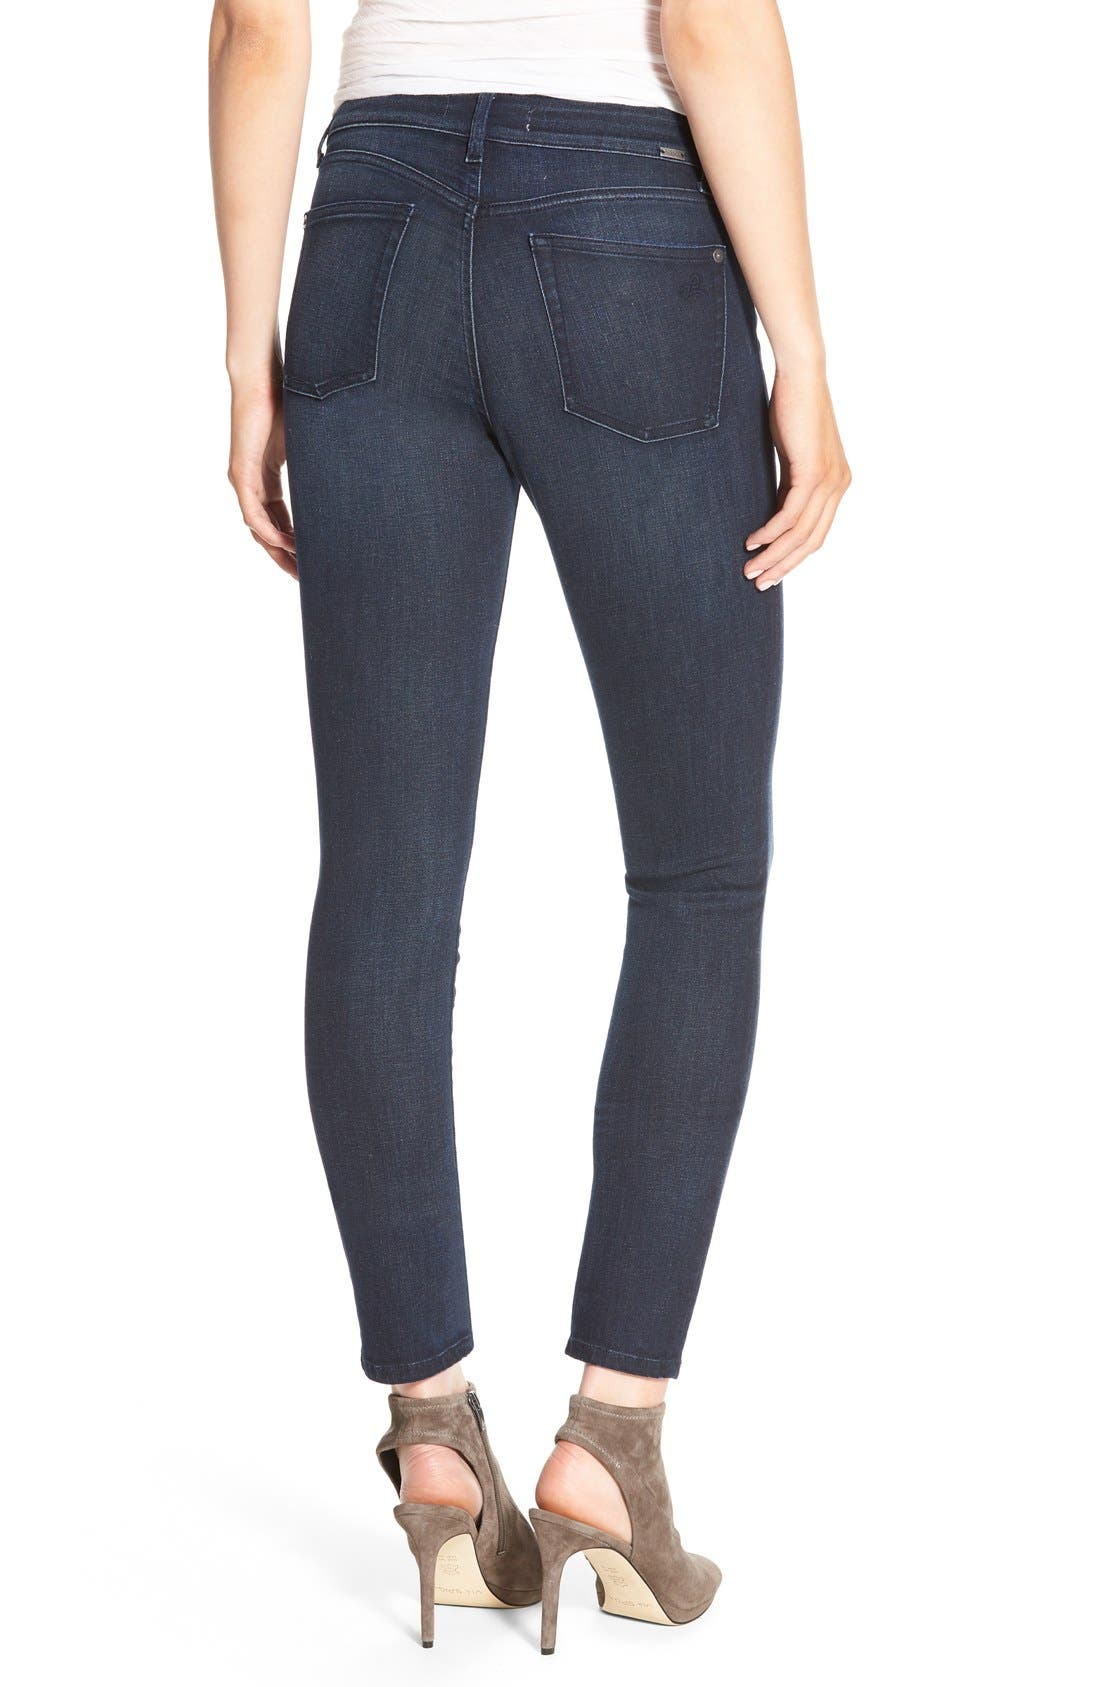 Alternate Image 2  - DL1961 Margaux Instasculpt Ankle Skinny Jeans (Canyon)